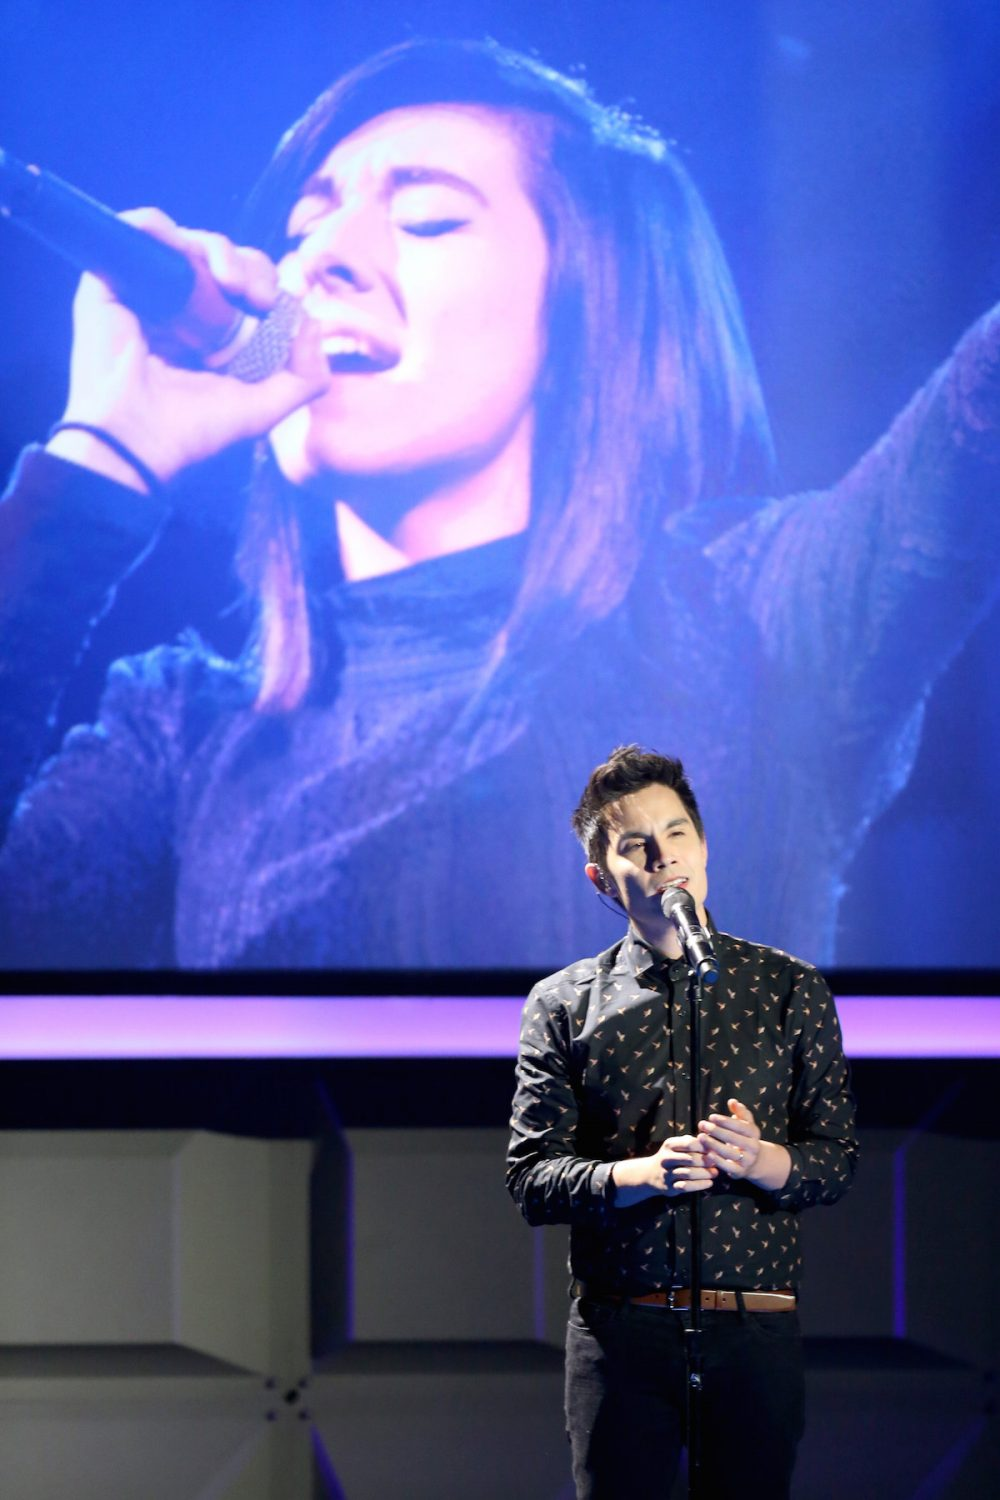 BEVERLY HILLS, CA - OCTOBER 04: Internet personality Sam Tsui (R) performs during a tribute to the late Christina Grimmie (image projected on video screen) during the 6th annual Streamy Awards hosted by King Bach and live streamed on YouTube at The Beverly Hilton Hotel on October 4, 2016 in Beverly Hills, California. (Photo by Frederick M. Brown/Getty Images for dick clark productions )